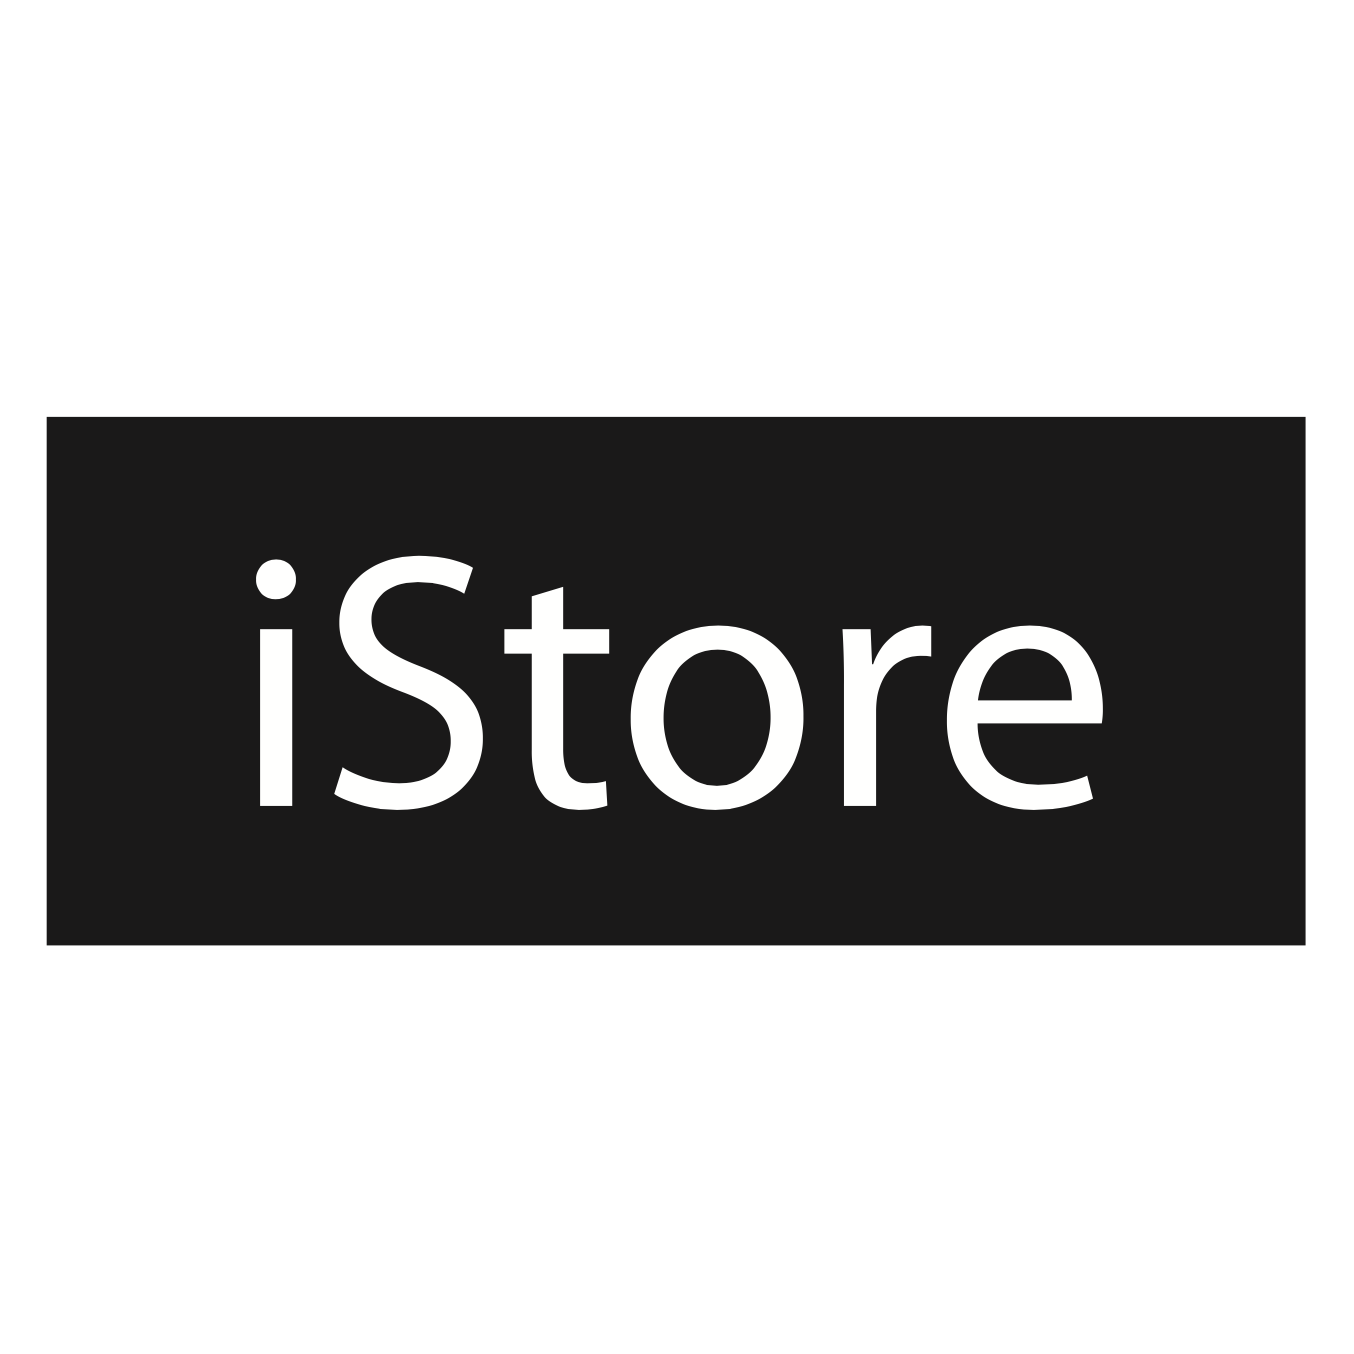 Don't just want the new iPhone every year, get it with iStore. It's never been this easy.